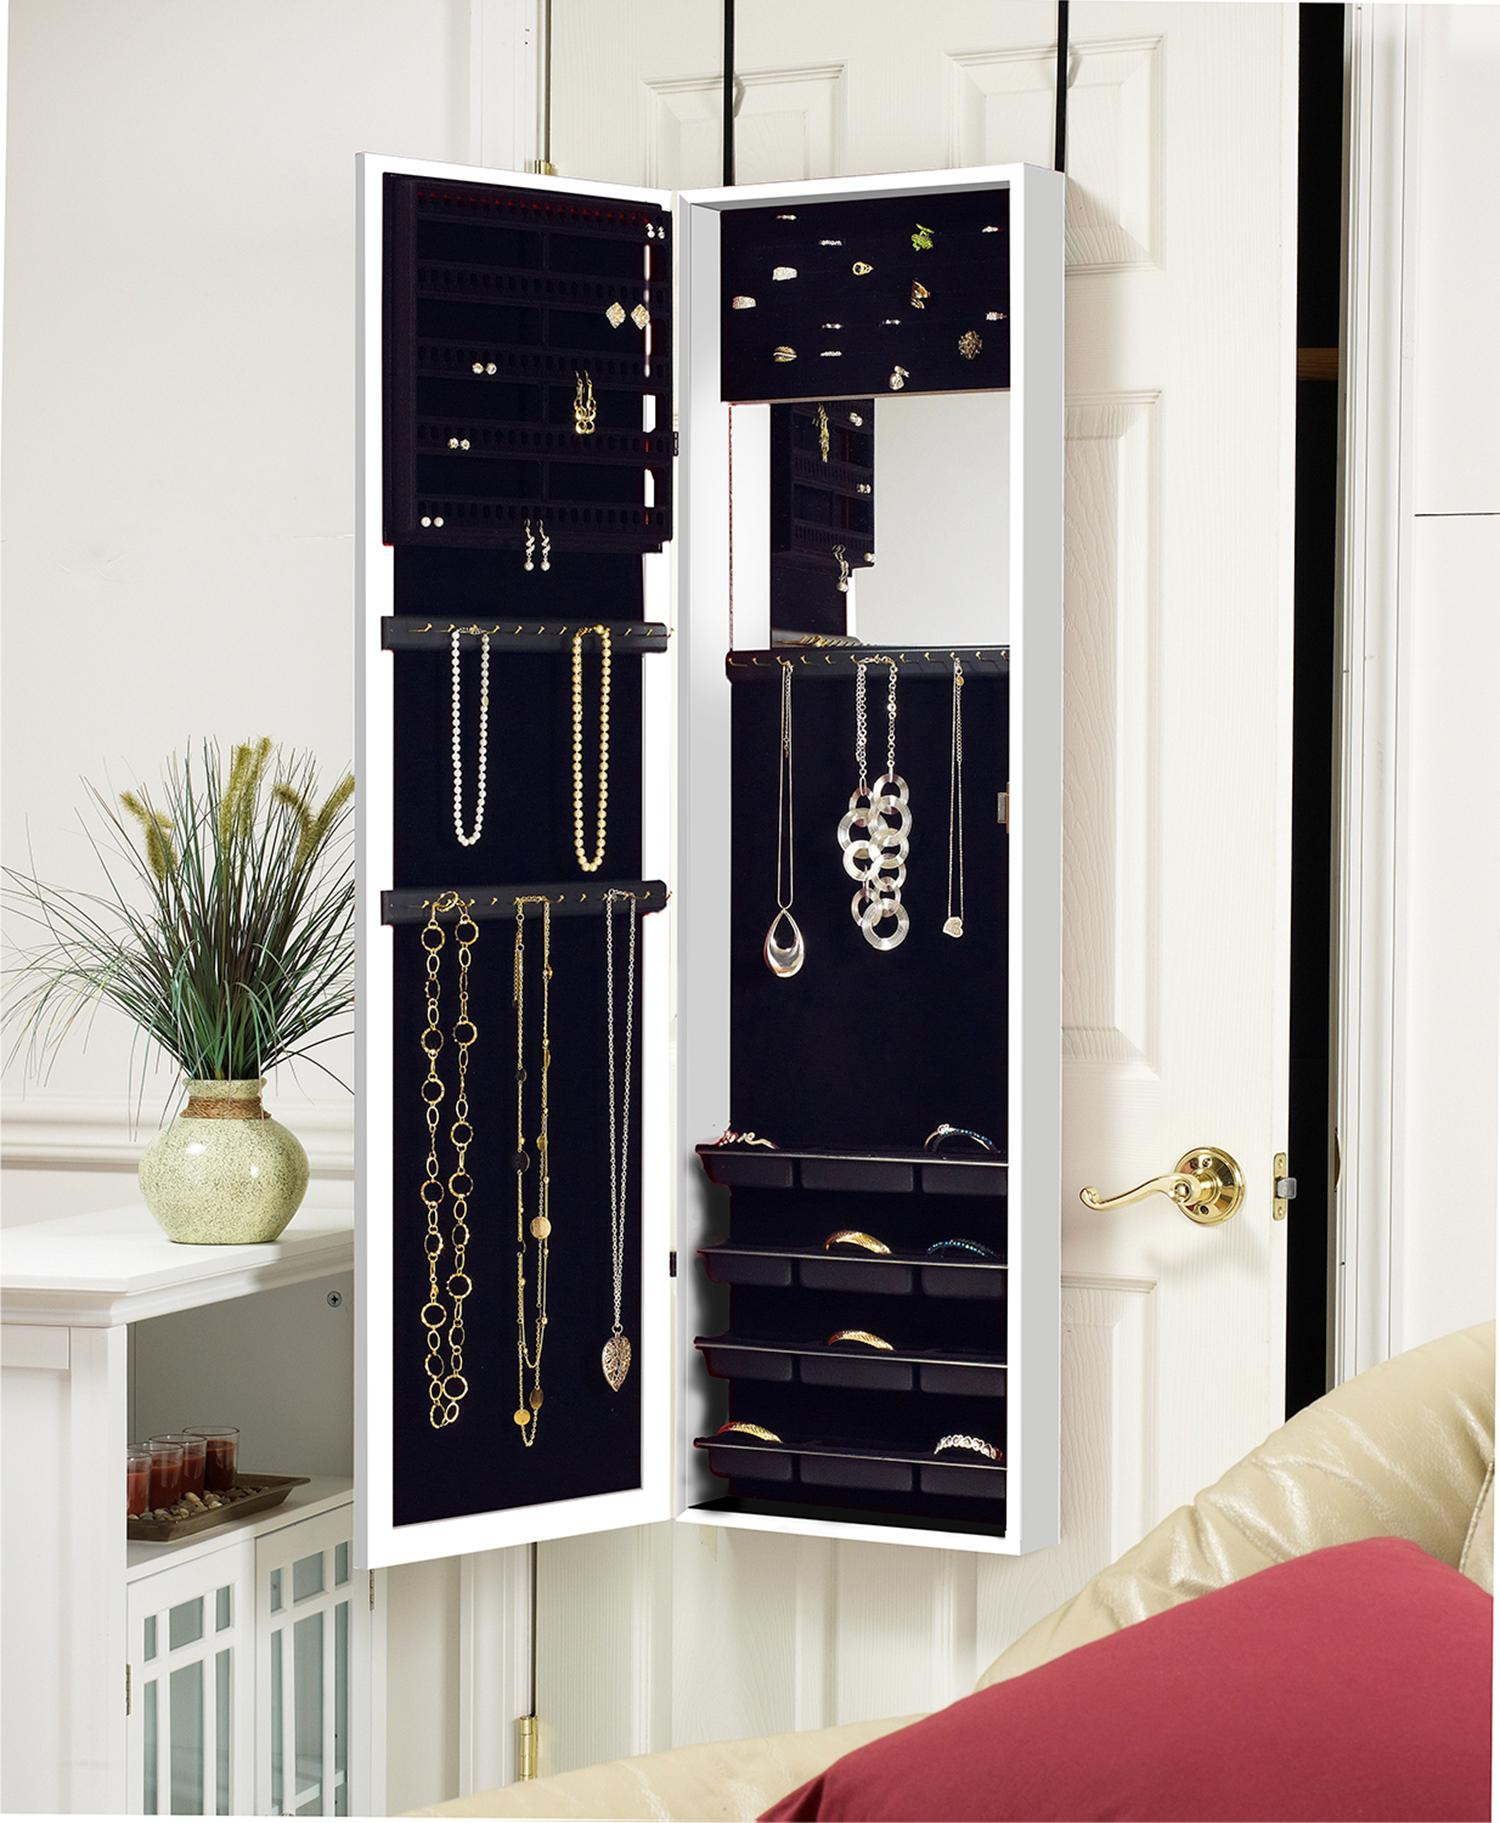 Amazon Com Plaza Astoria Wall Door Mount Jewelry Armoire